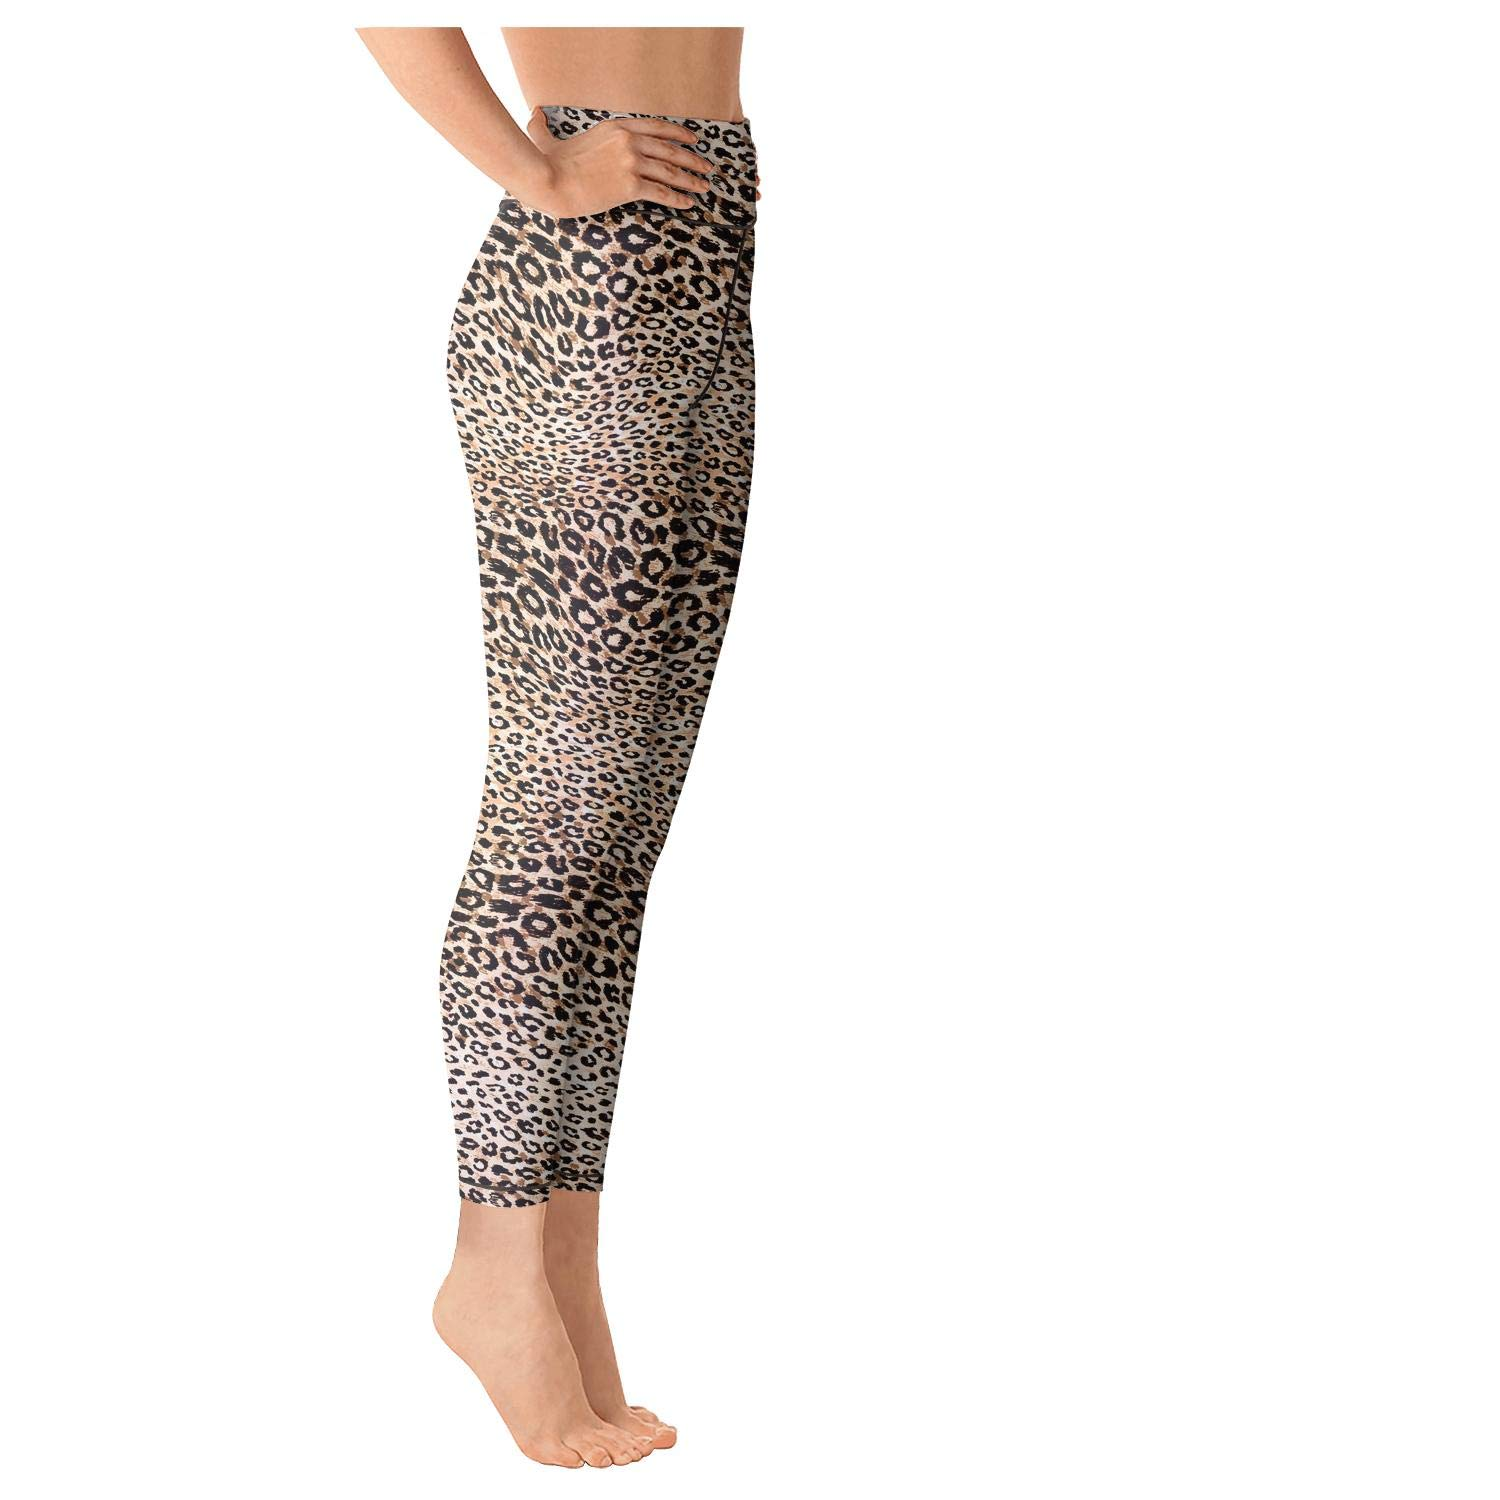 Jufdds Camouflage Color Block Collage Army High Waist with Pocket Yoga Pants Sweat-Wicking Legging Fitness Retro